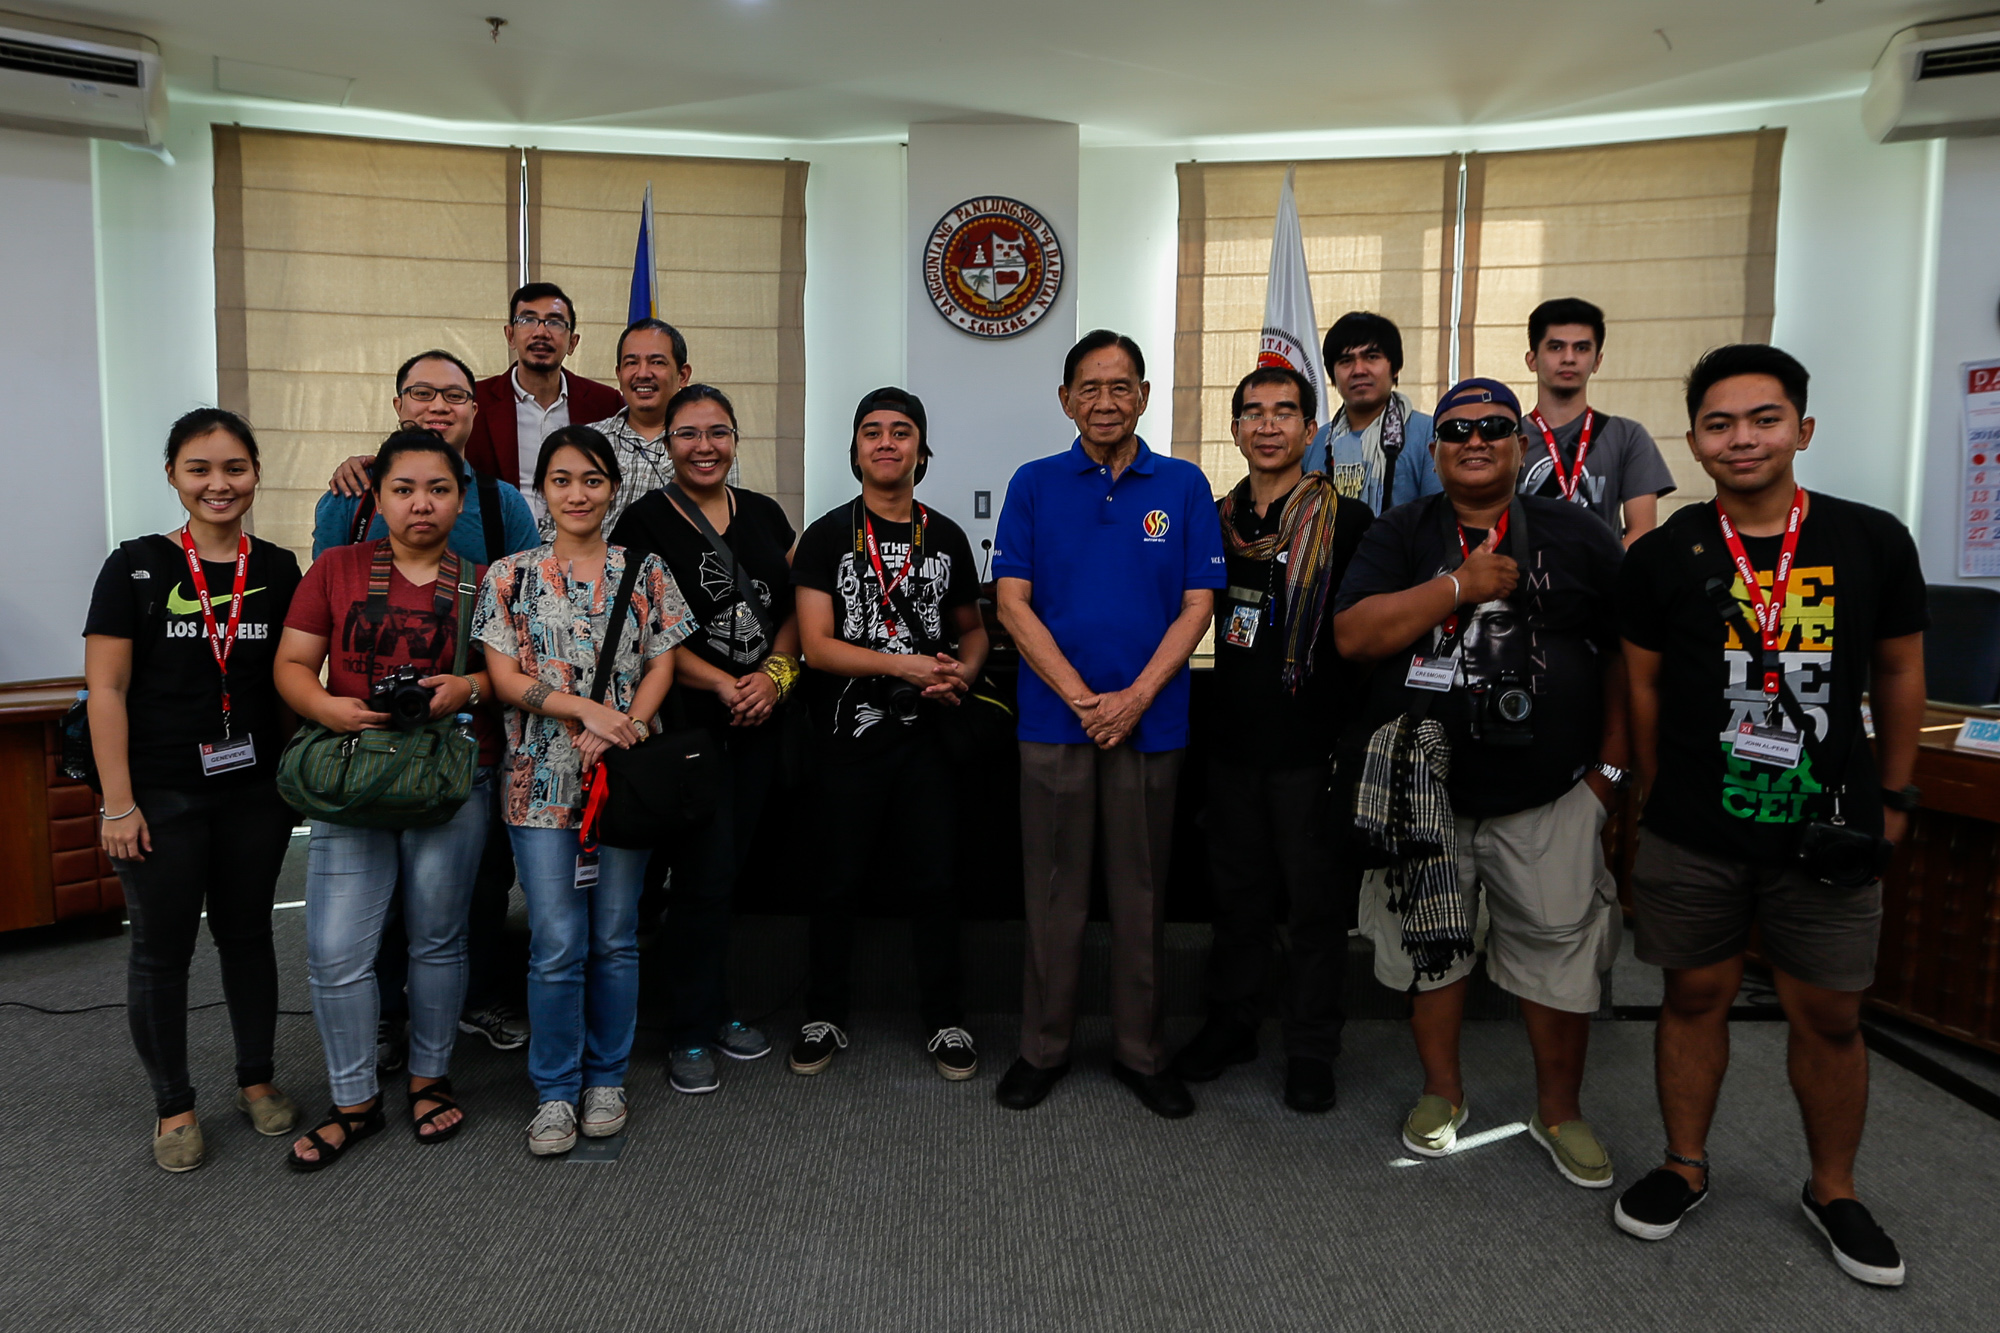 Dapitan city Vice-Mayor Ruben E. Cad (middle, in blue shirt), officers and members of the Photojournalists' Center of the Philippines, and participants of the 11th Professional Photojournalism and Documentary Photography workshop pose for the camera after a meeting on November 22, 2016.